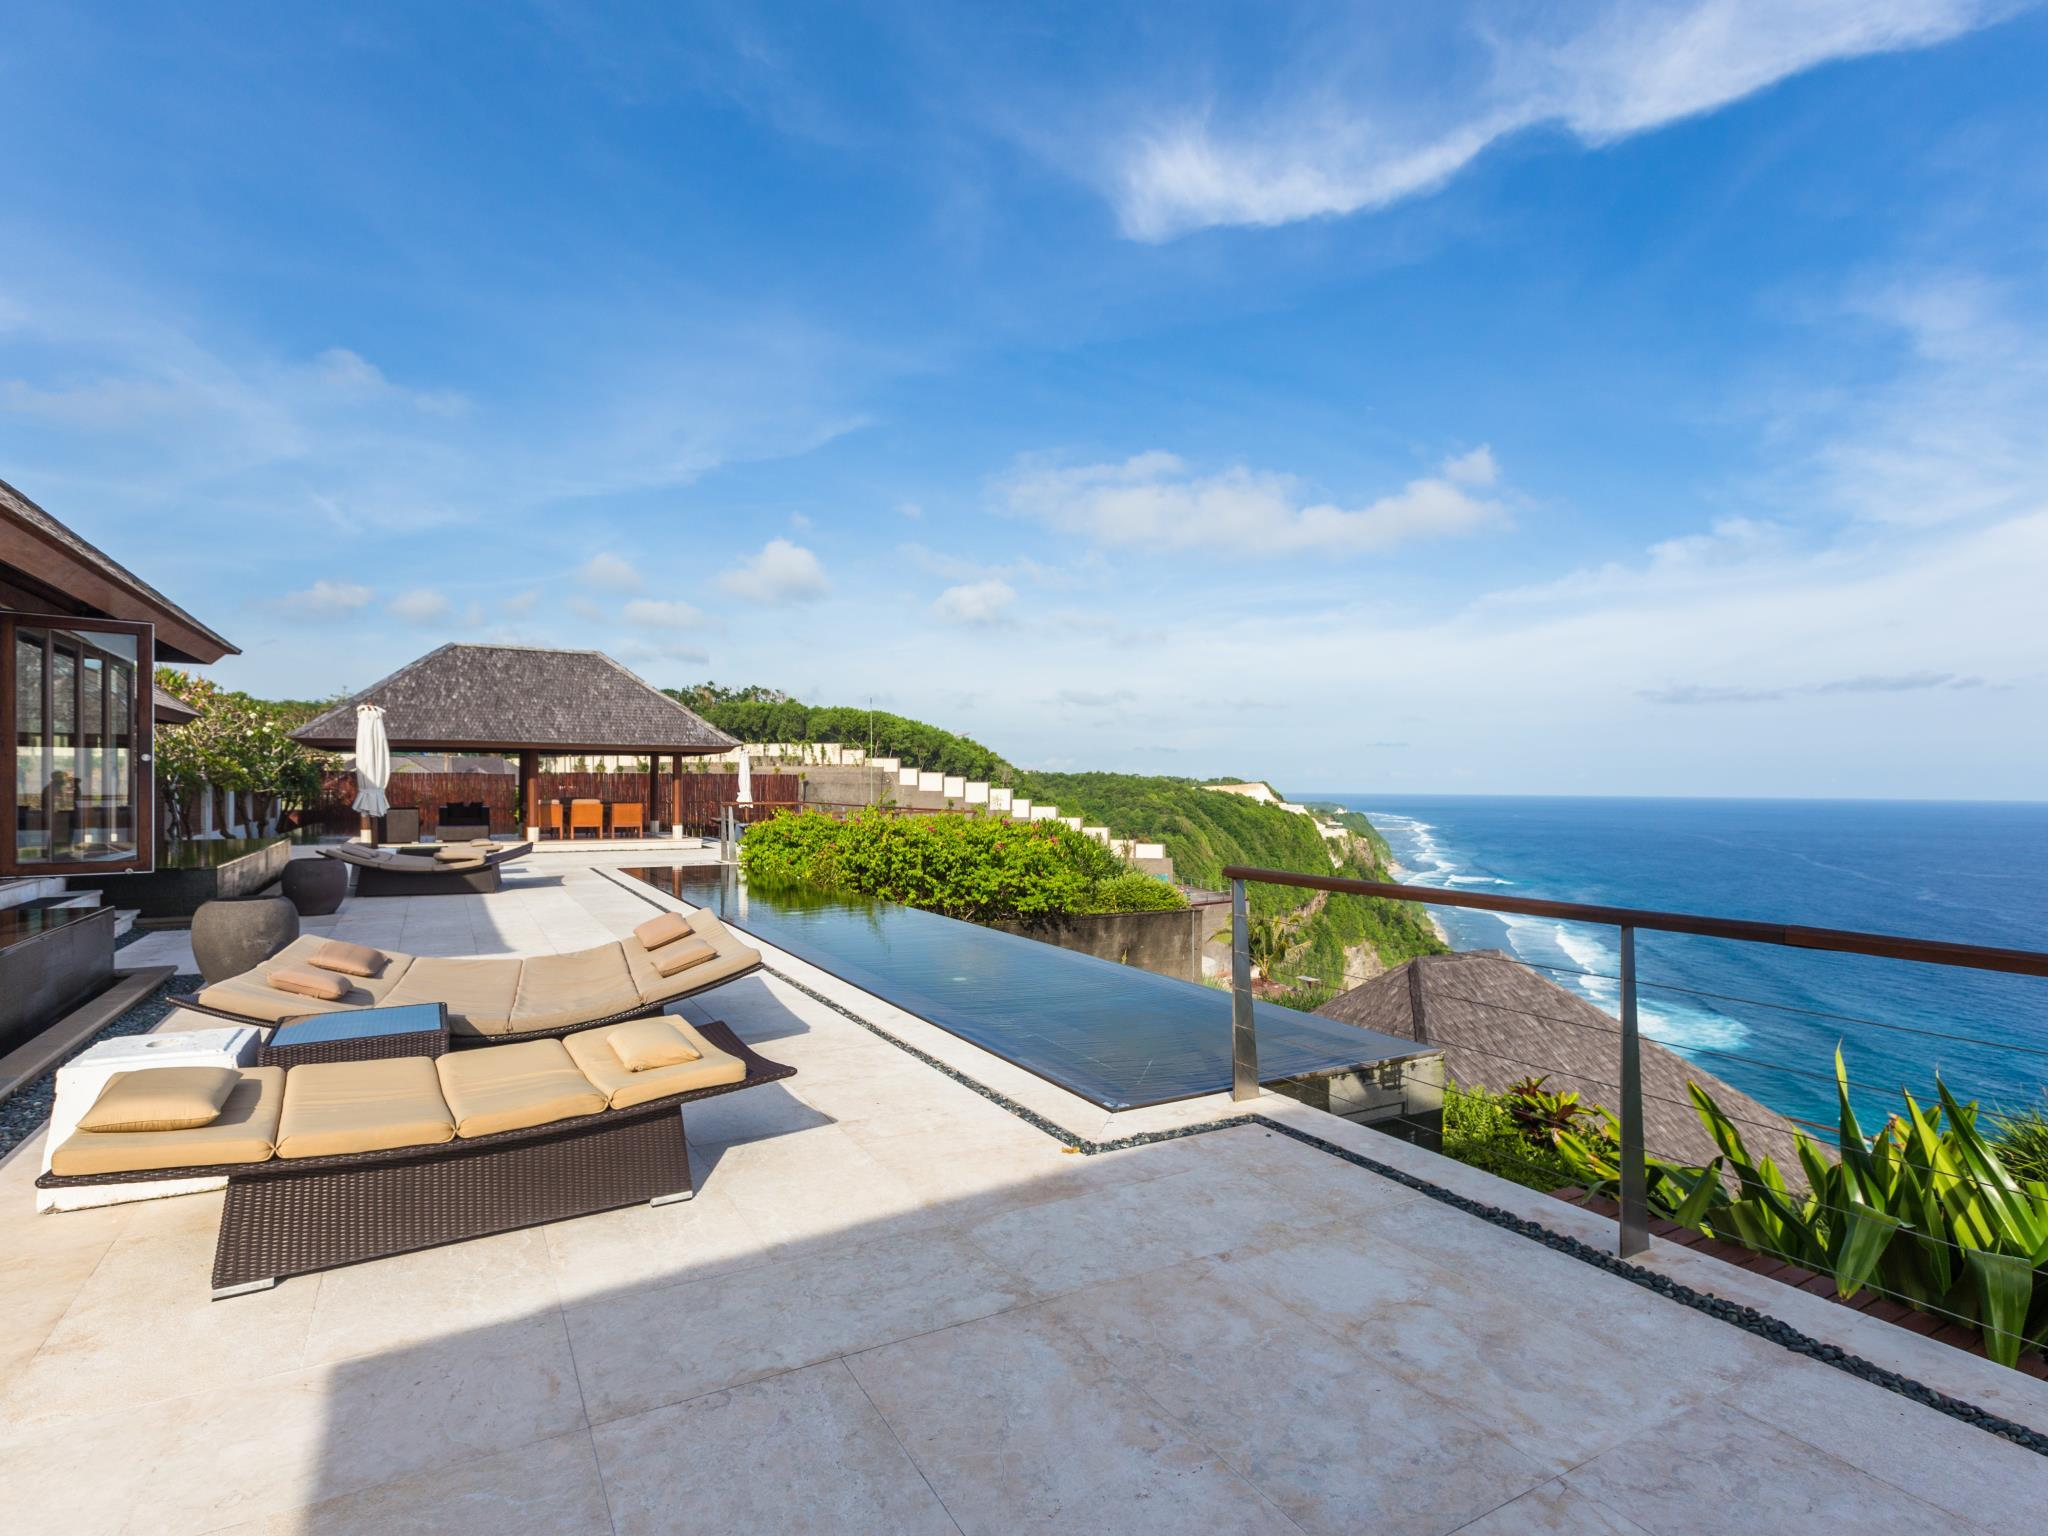 The Edge Bali Villa Bali Offers Free Cancellation 2021 Price Lists Reviews